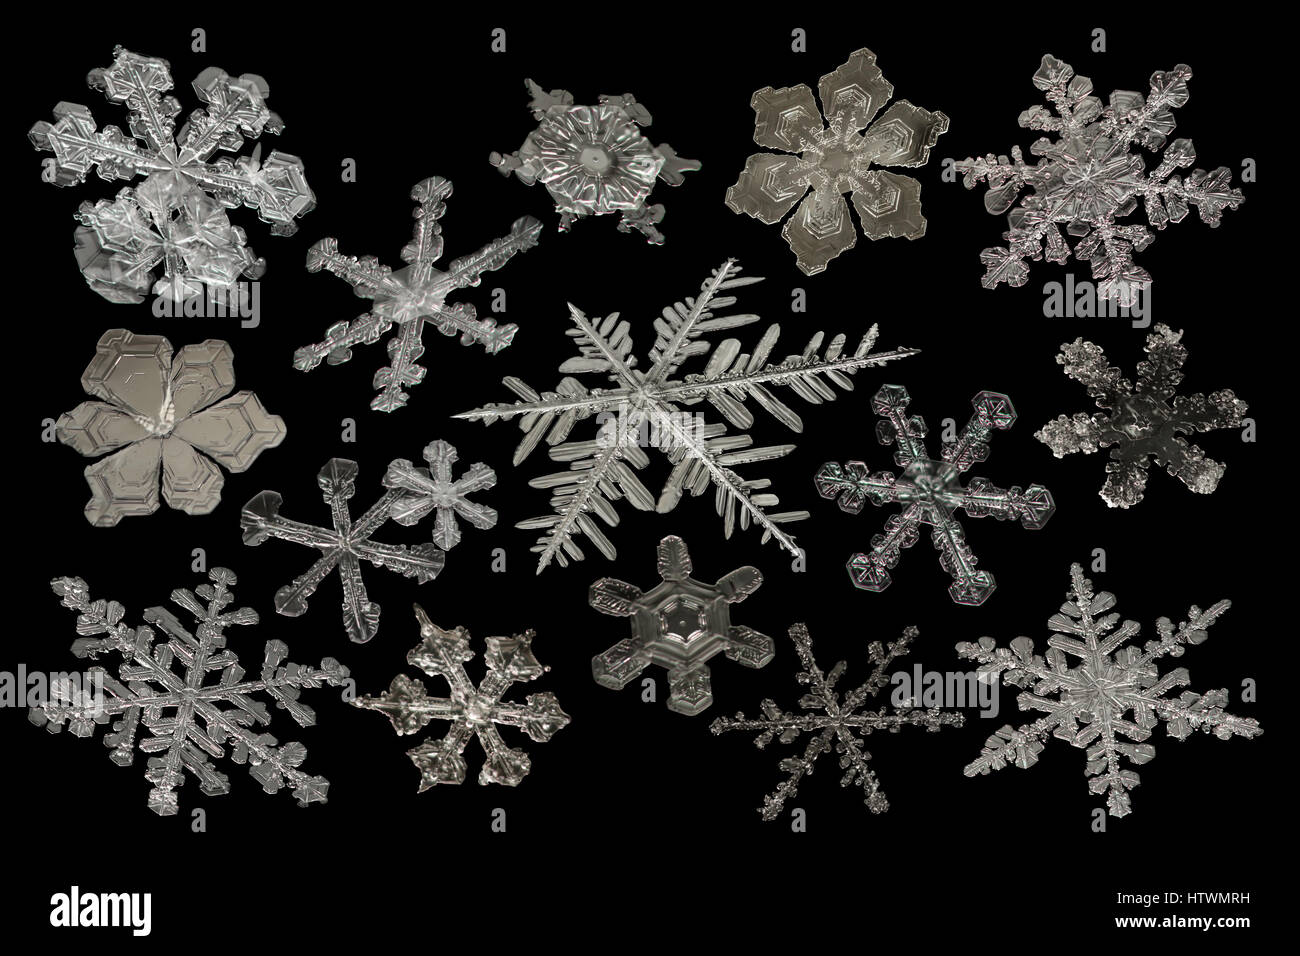 Extreme magnification - Real snowflake compilation on black background - Stock Image